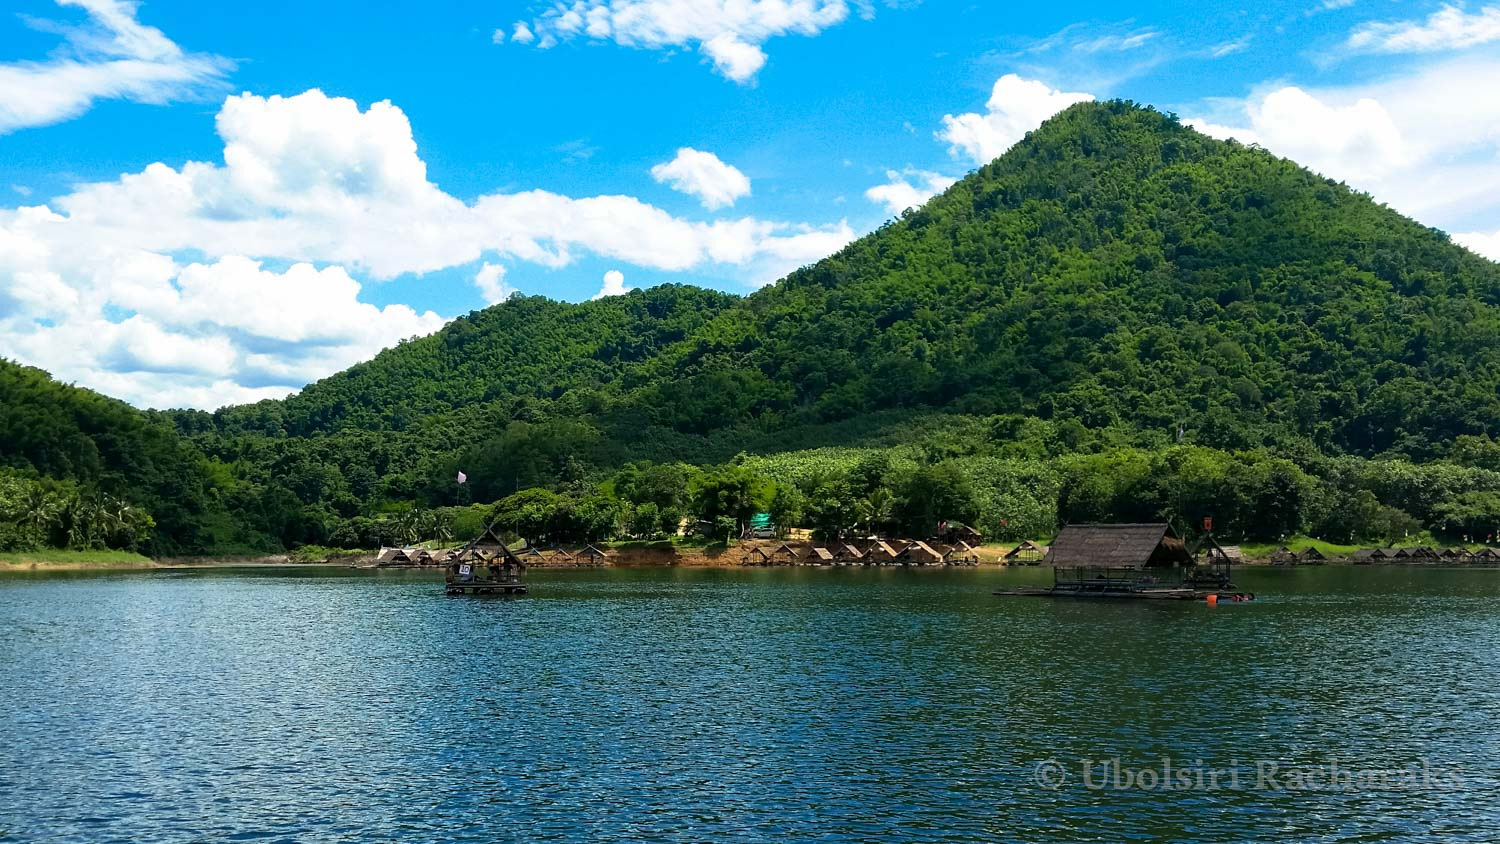 """Huai Krathing Reservoir - It's a little off the route to get to Dan Sai province from the airport, but it's totally worth the extra 20 minutes to the drive! Coming from Loei City, going along Highway 21, turn right at the sign for the reservoir.Originally just for irrigation, the locals have made it a relaxing local spot to eat. There seems to be a few different spots available for lunch, but the one we went to was """"แพพ่อบ้านระเริงชถ"""" or """"Phaa paw-baan ra reung chot"""" which literally translates to something along the lines of """"Cheerful Rafting House"""" or how they have it on their English menu: """"Head of the household raft rejoices the water"""".They had a flat fee of 200 THB or so (depends on the group size) to rent out the entire raft for as long as you wanted and then add the cost of whatever food and drinks you order. You're also welcome to get out into the water. If you're not a strong swimmer, they provide life jackets too.Phone number: 0808109313"""